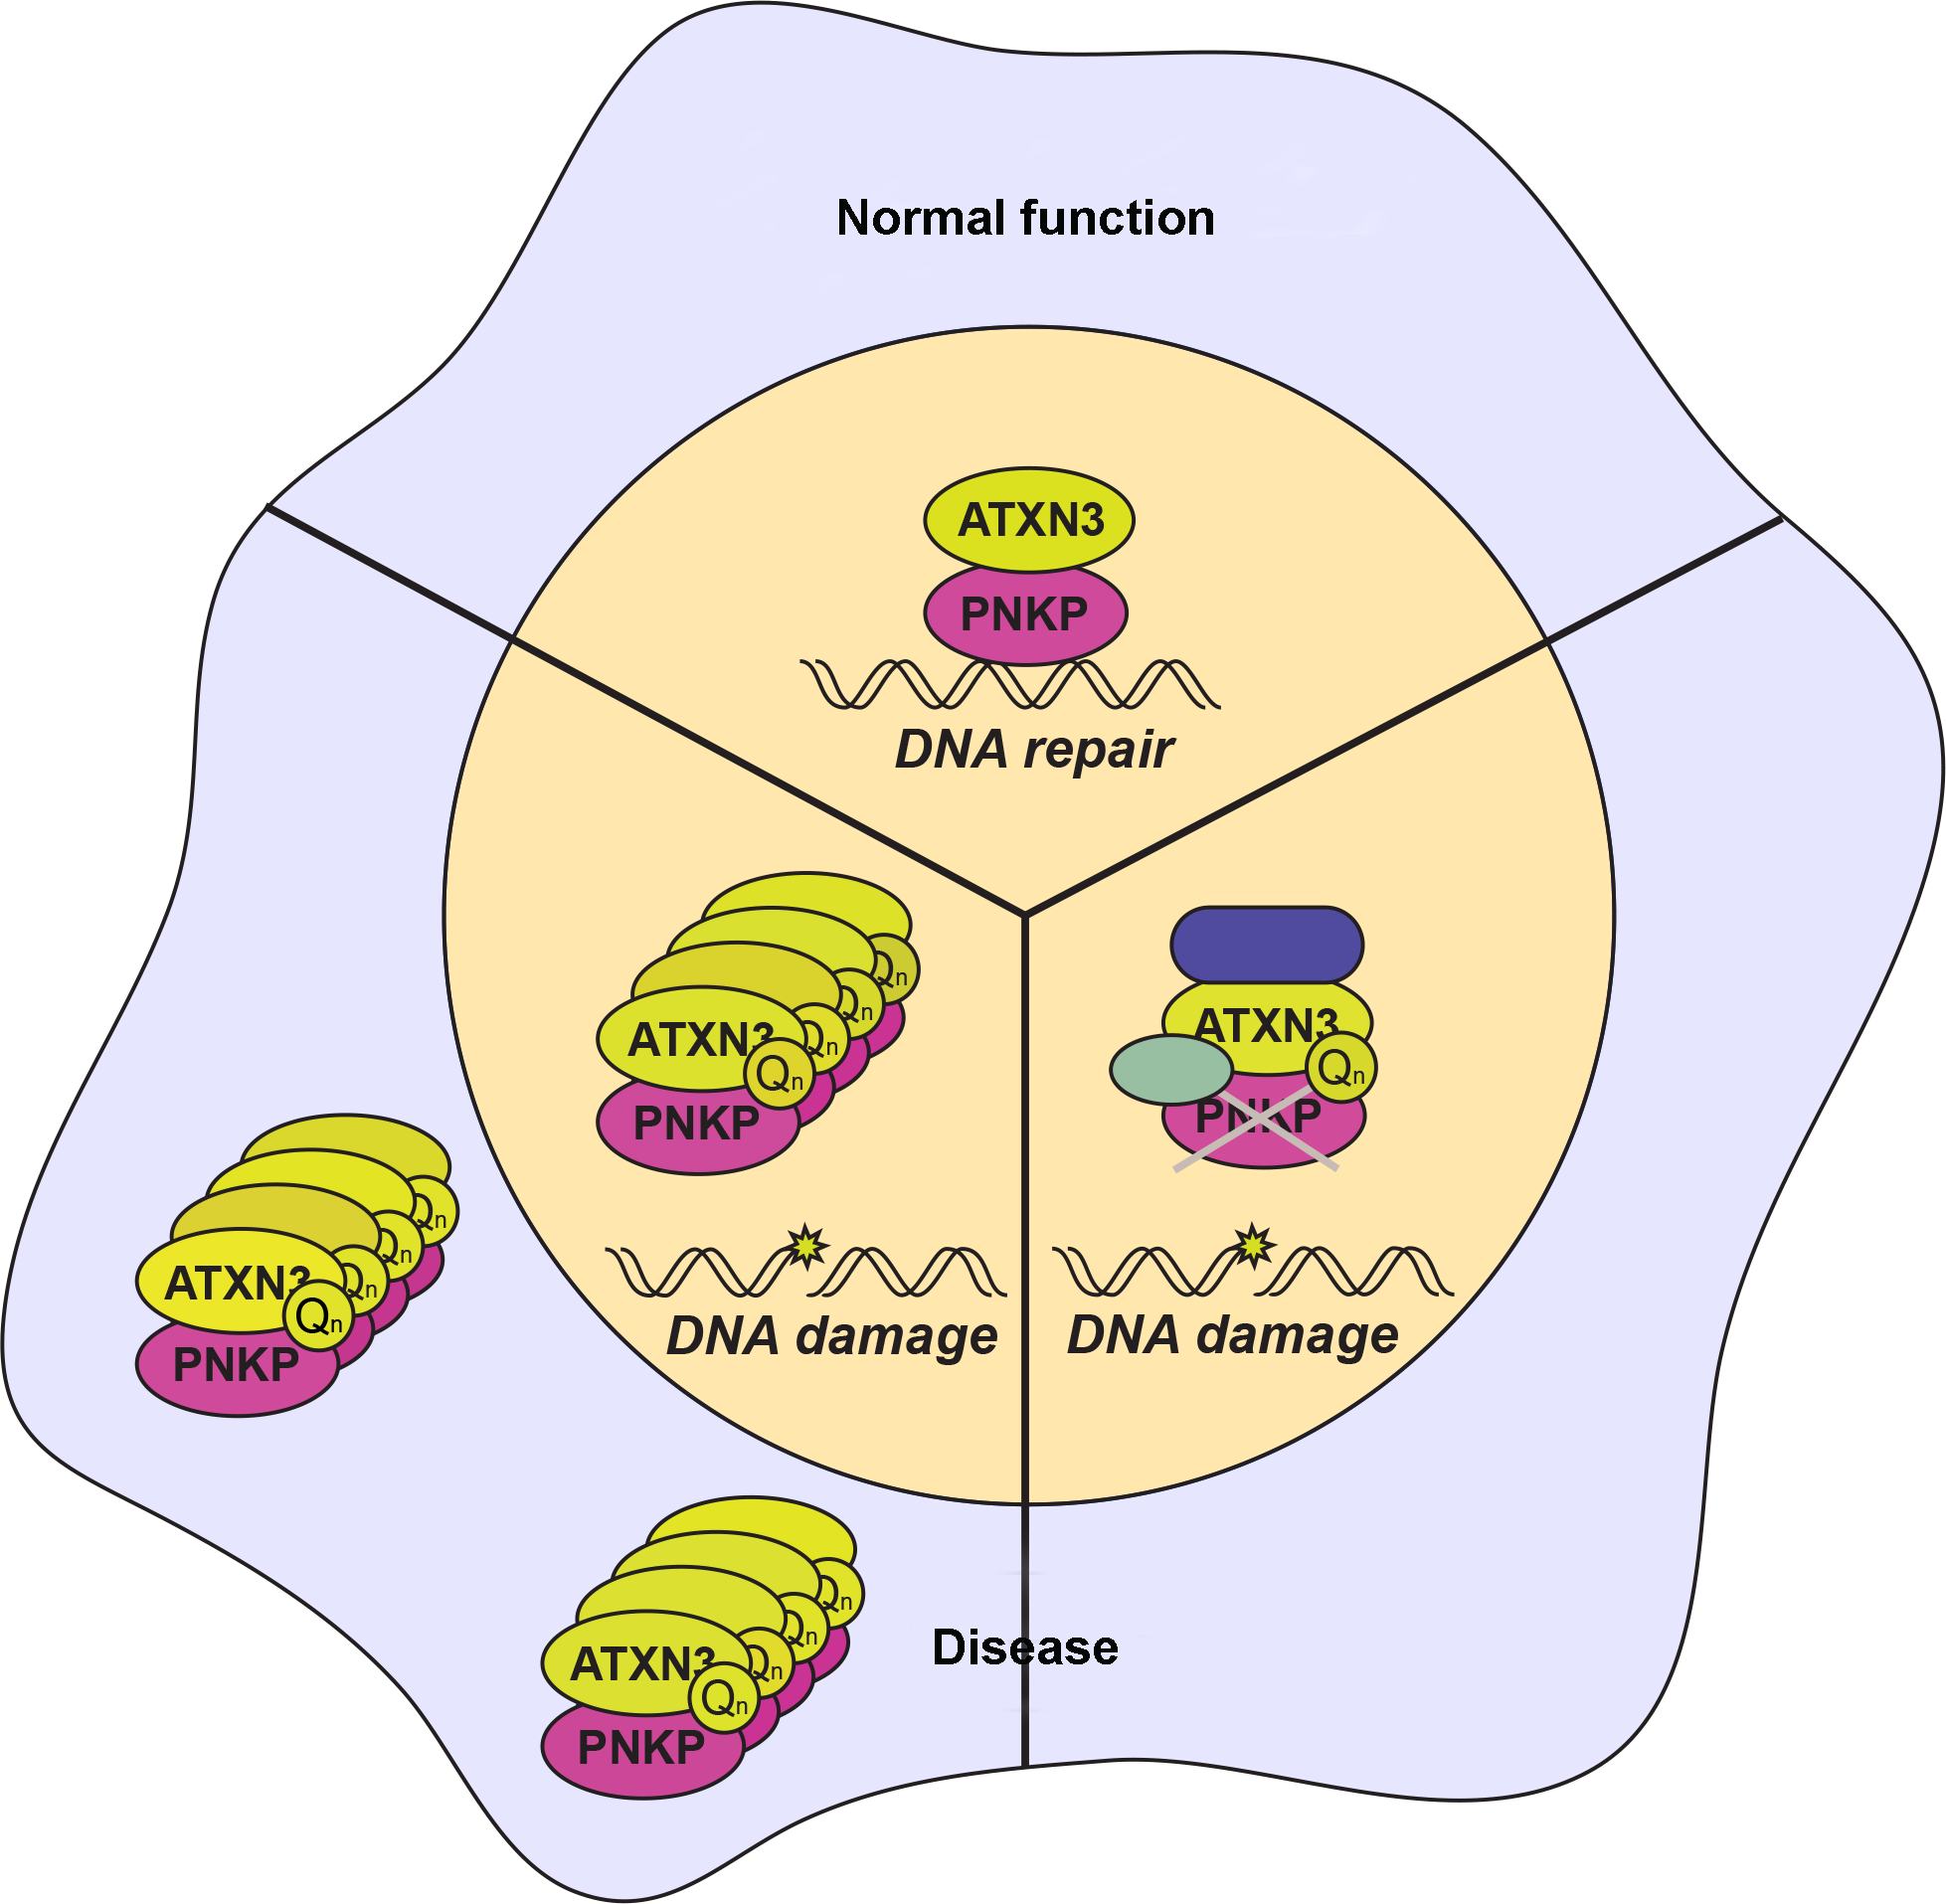 Interaction of ataxin-3 and PNKP in normal and disease states.